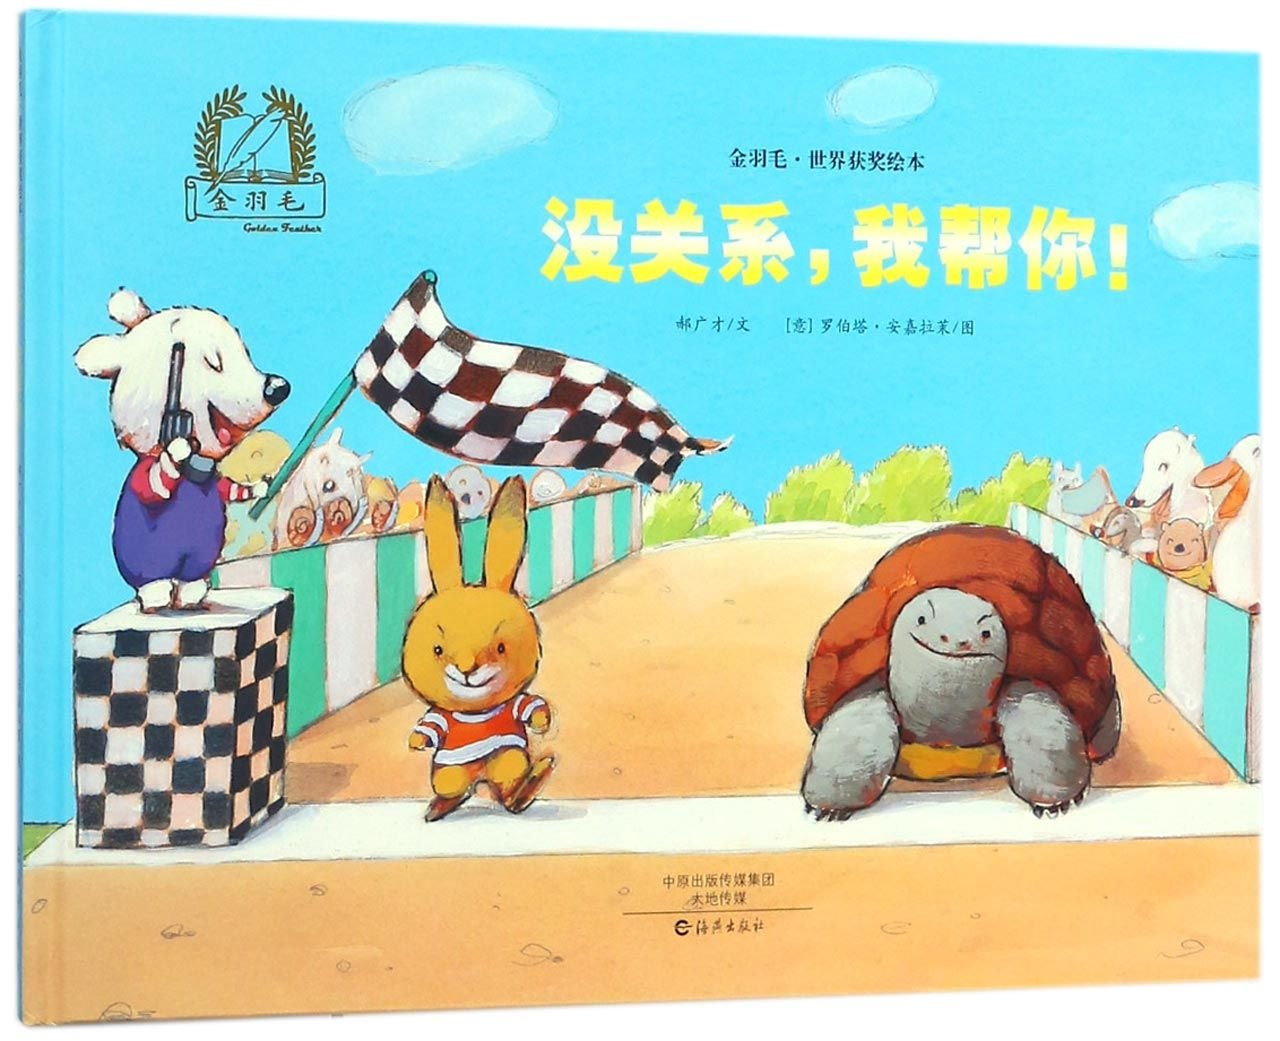 It's Ok, I Can Help You (Hardcover) / Golden Feather International Award-winning Picture Books (Chinese Edition) ebook